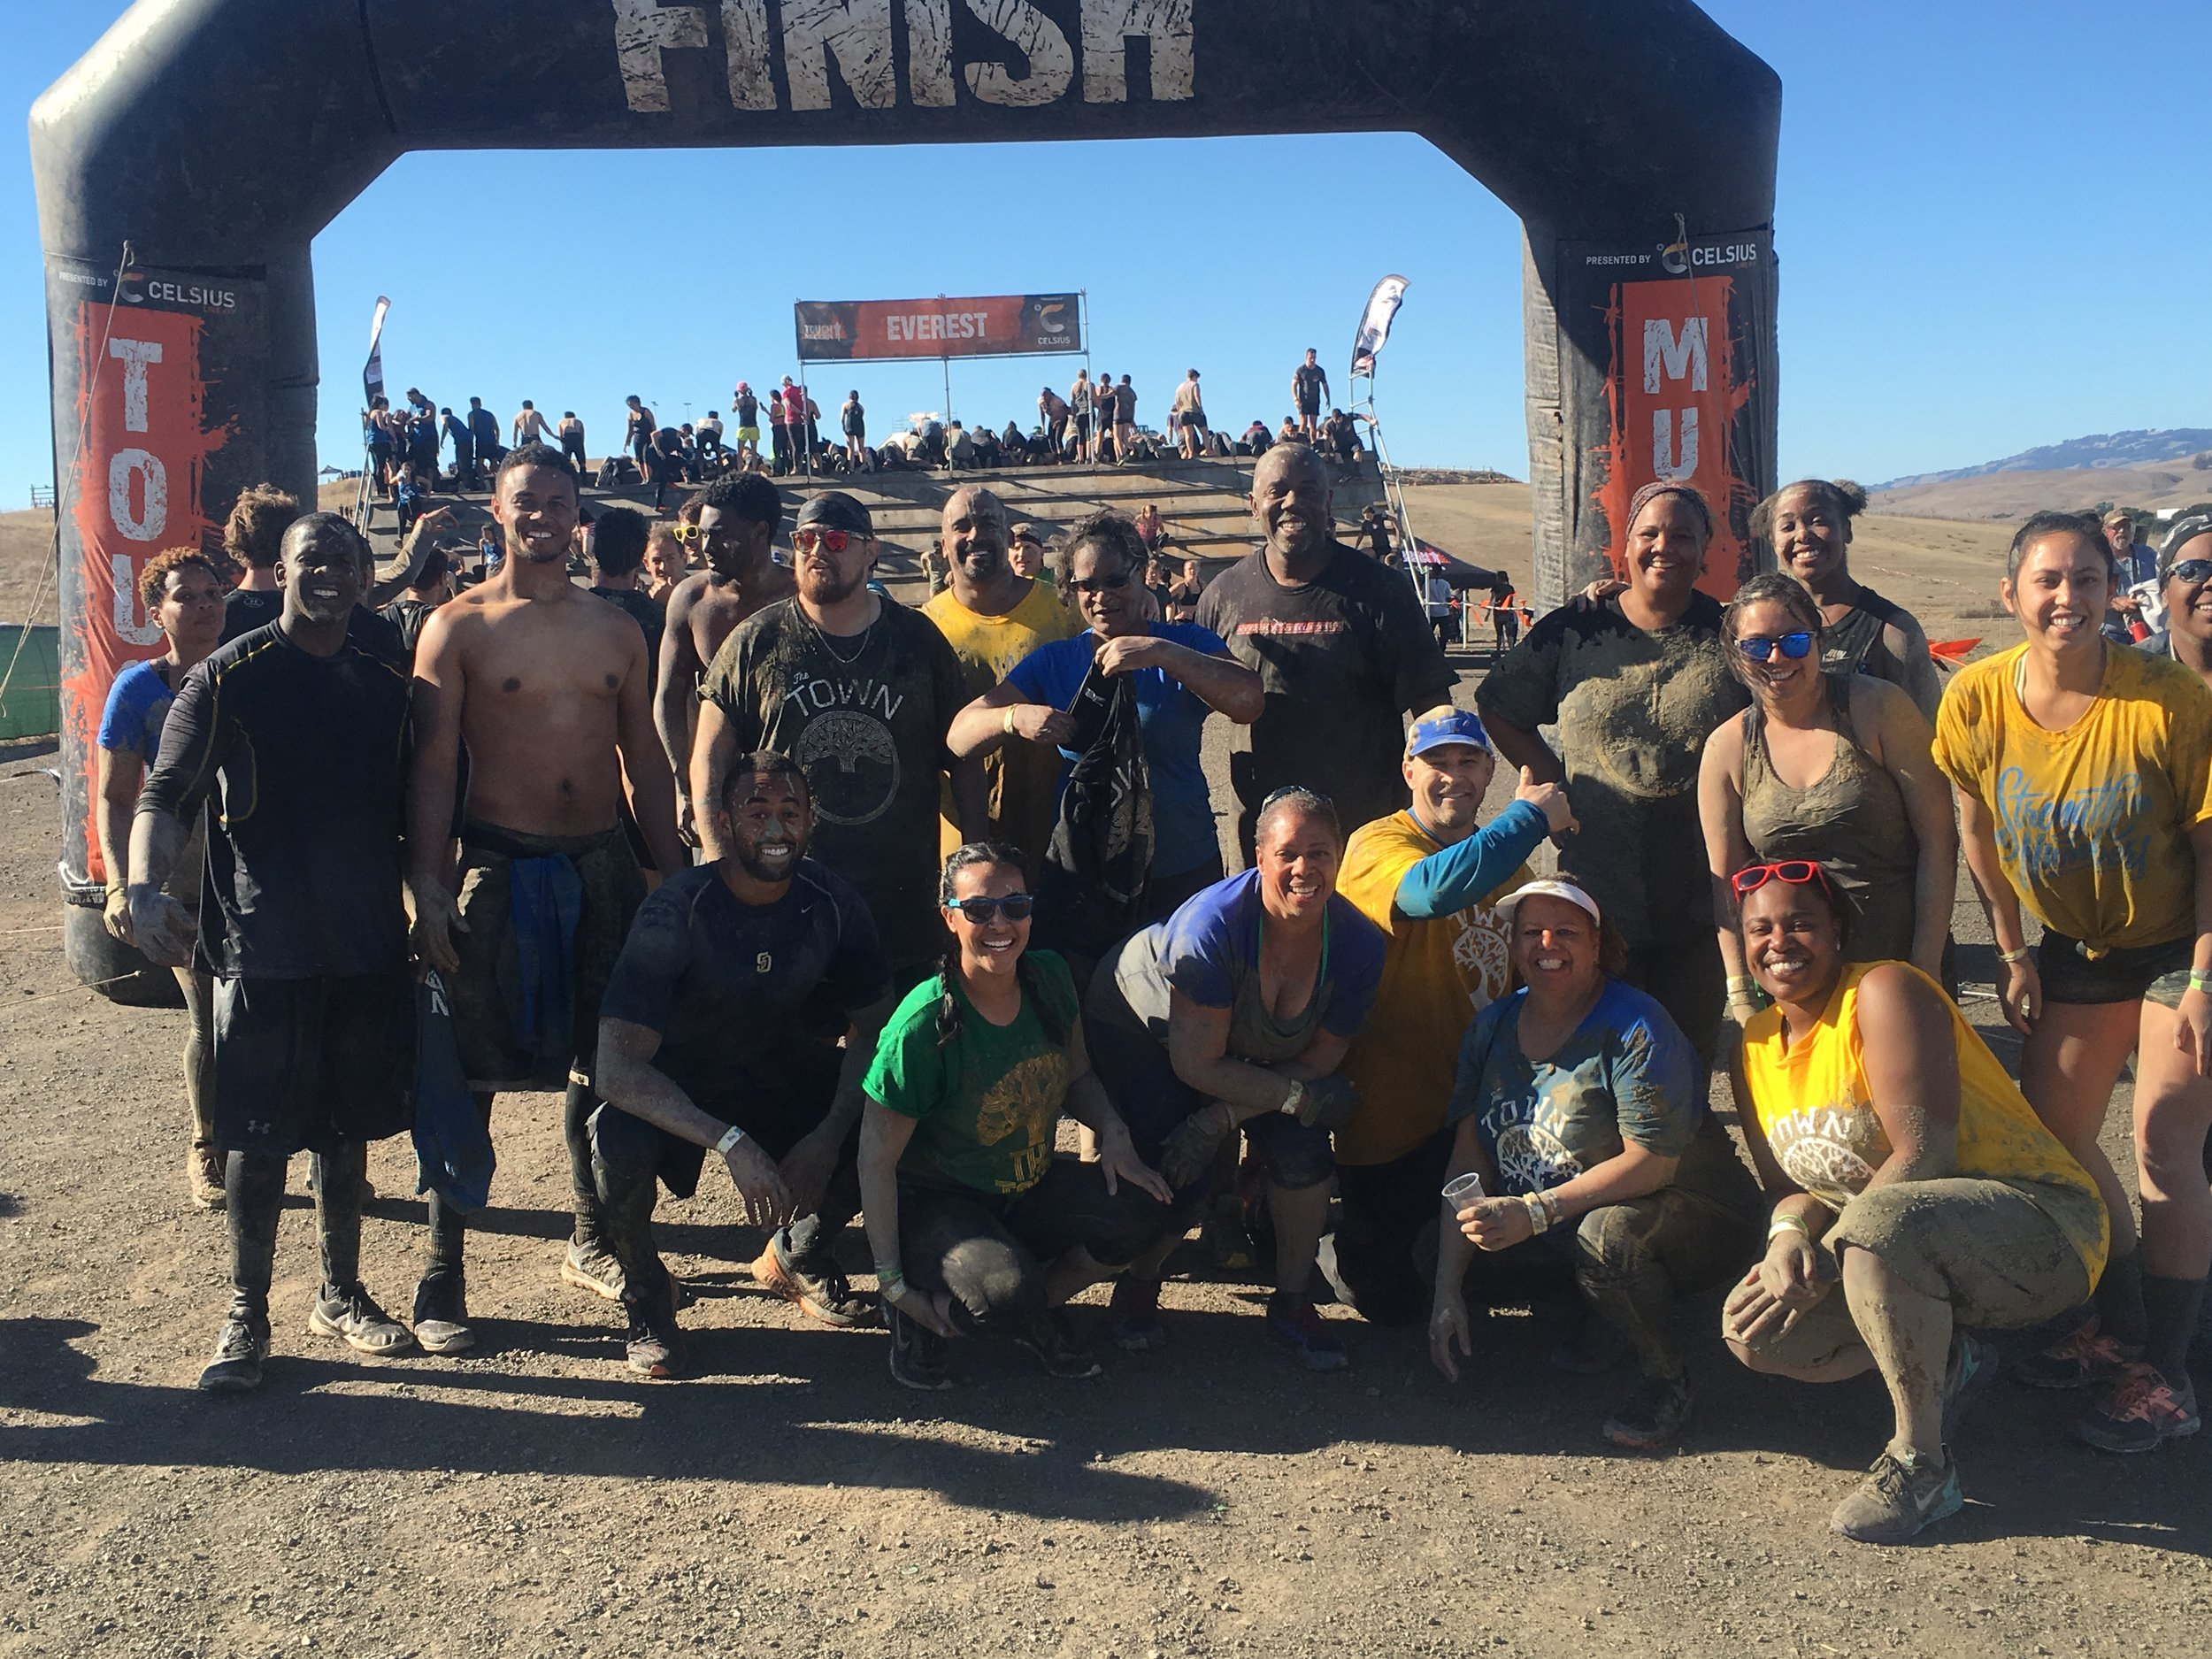 An all-team effort to finish this Tough Mudder!